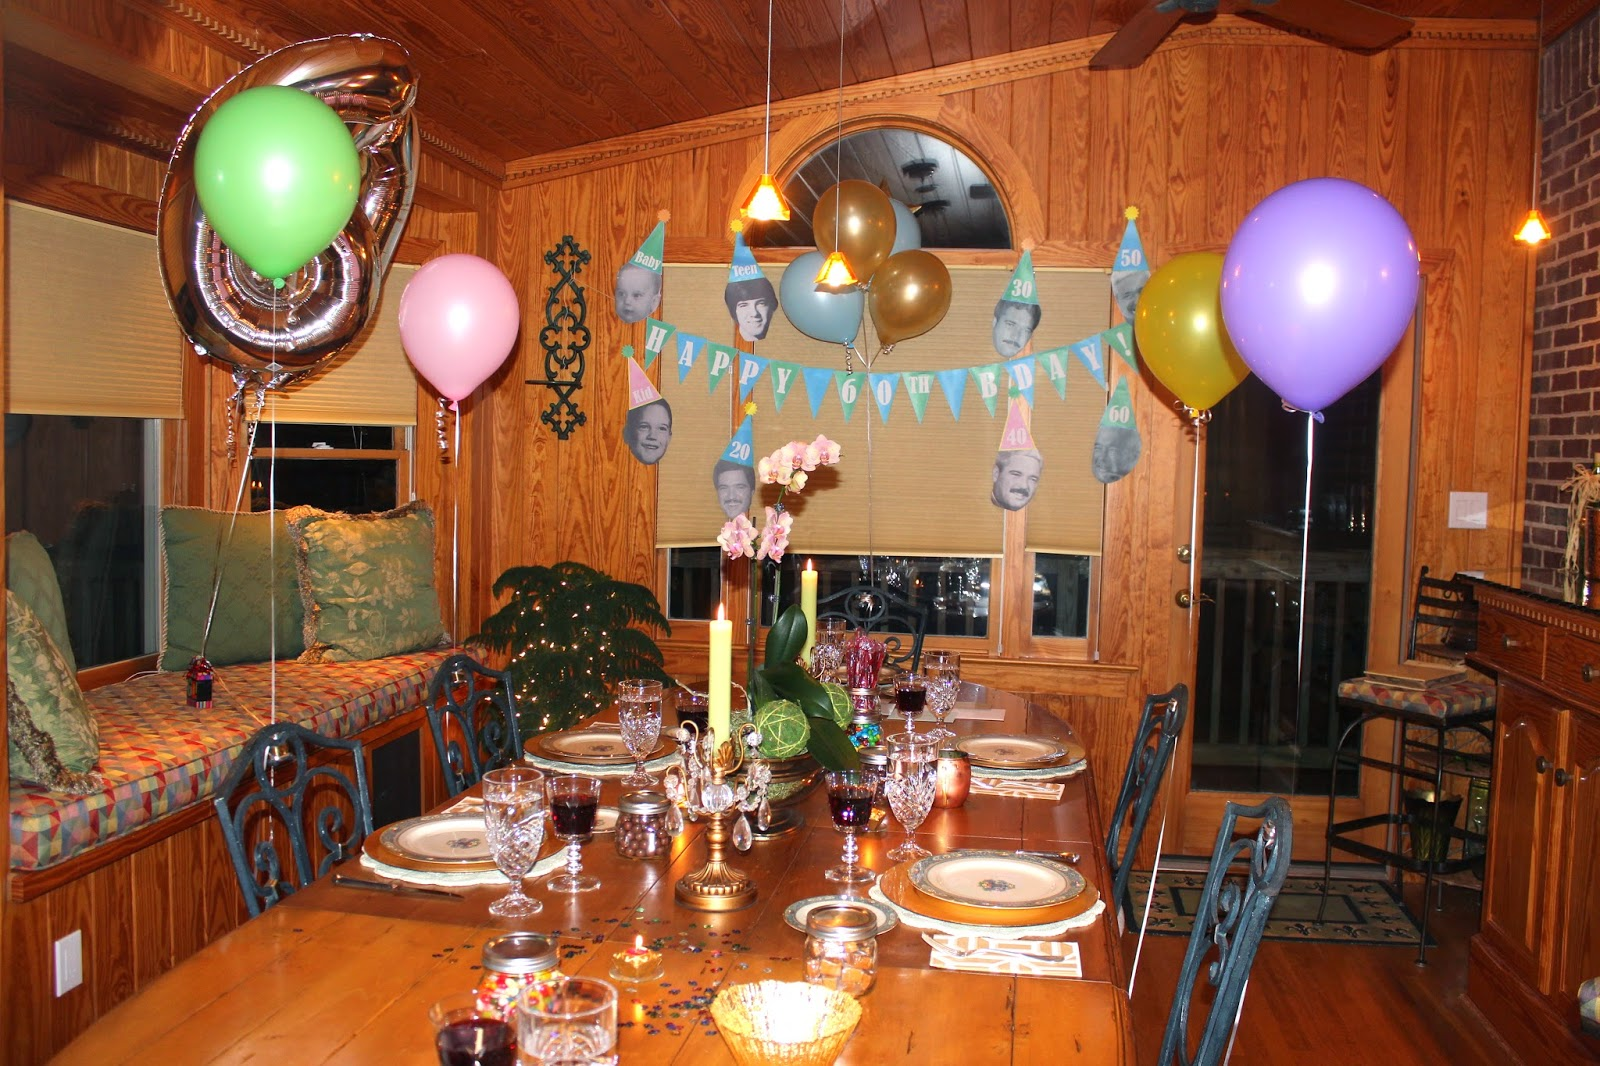 60th Birthday Dinner Party Ideas Part - 21: 60th Birthday Party Ideas - Round 1